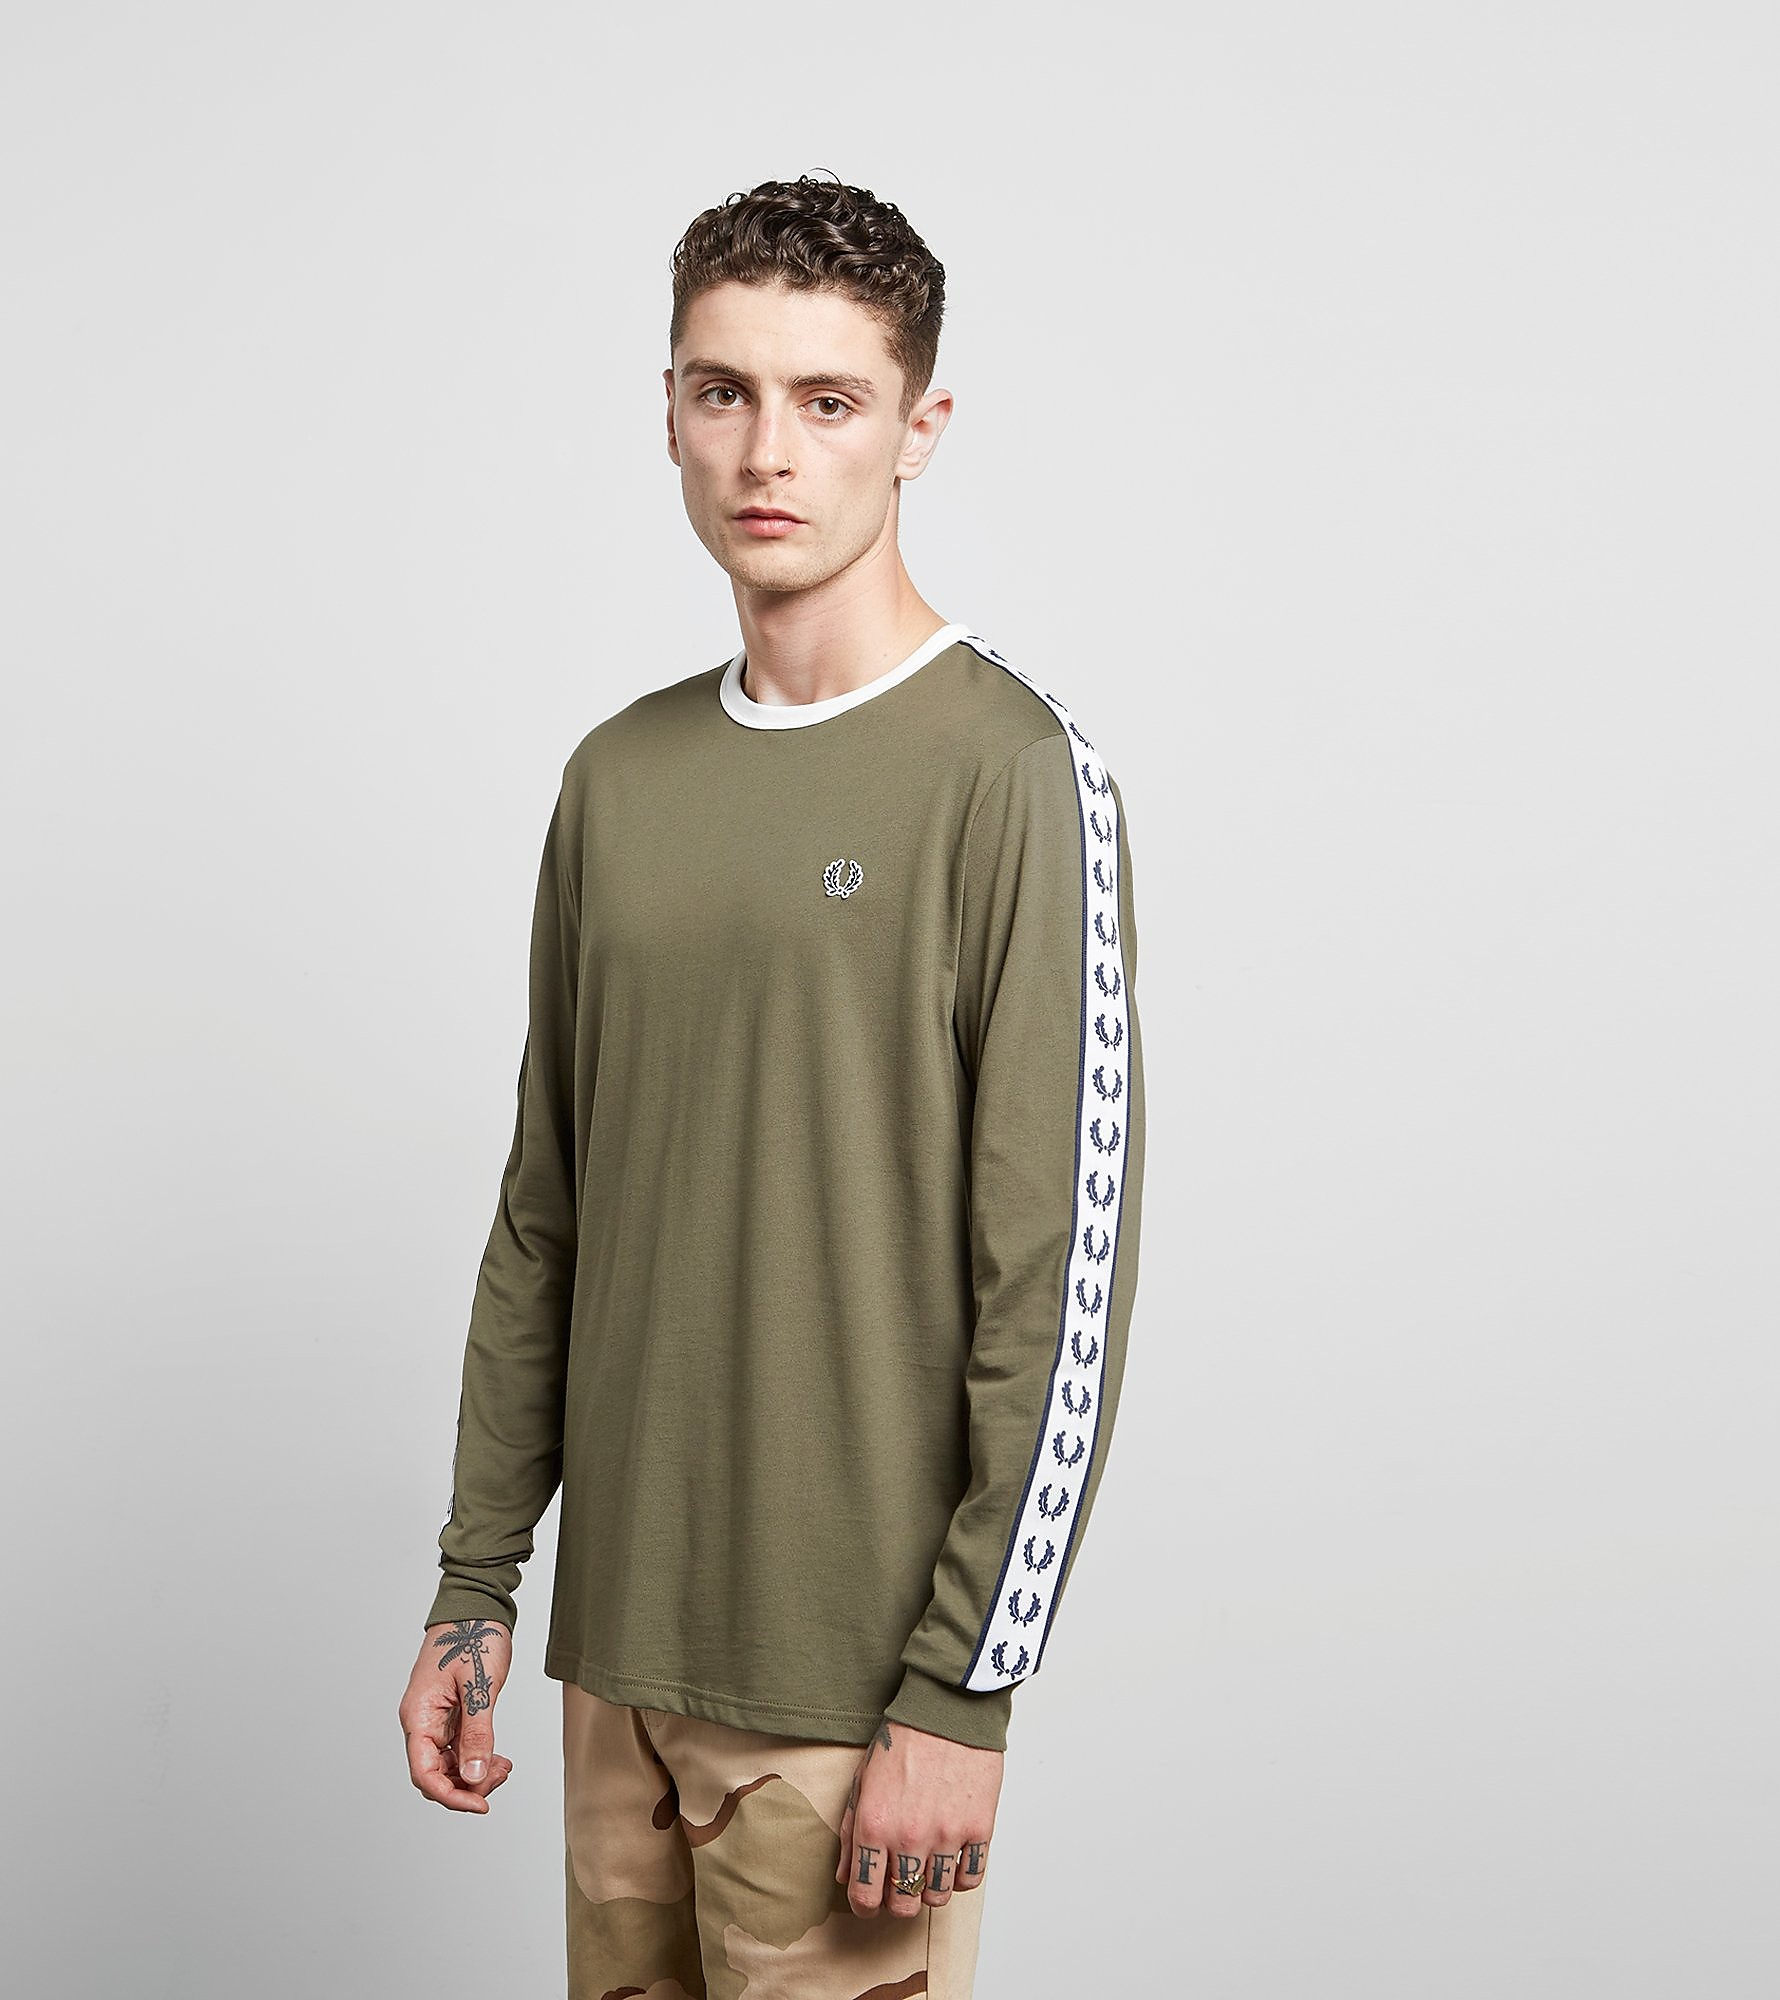 Fred Perry Long Sleeved Ringer T-Shirt - size? Exclusive